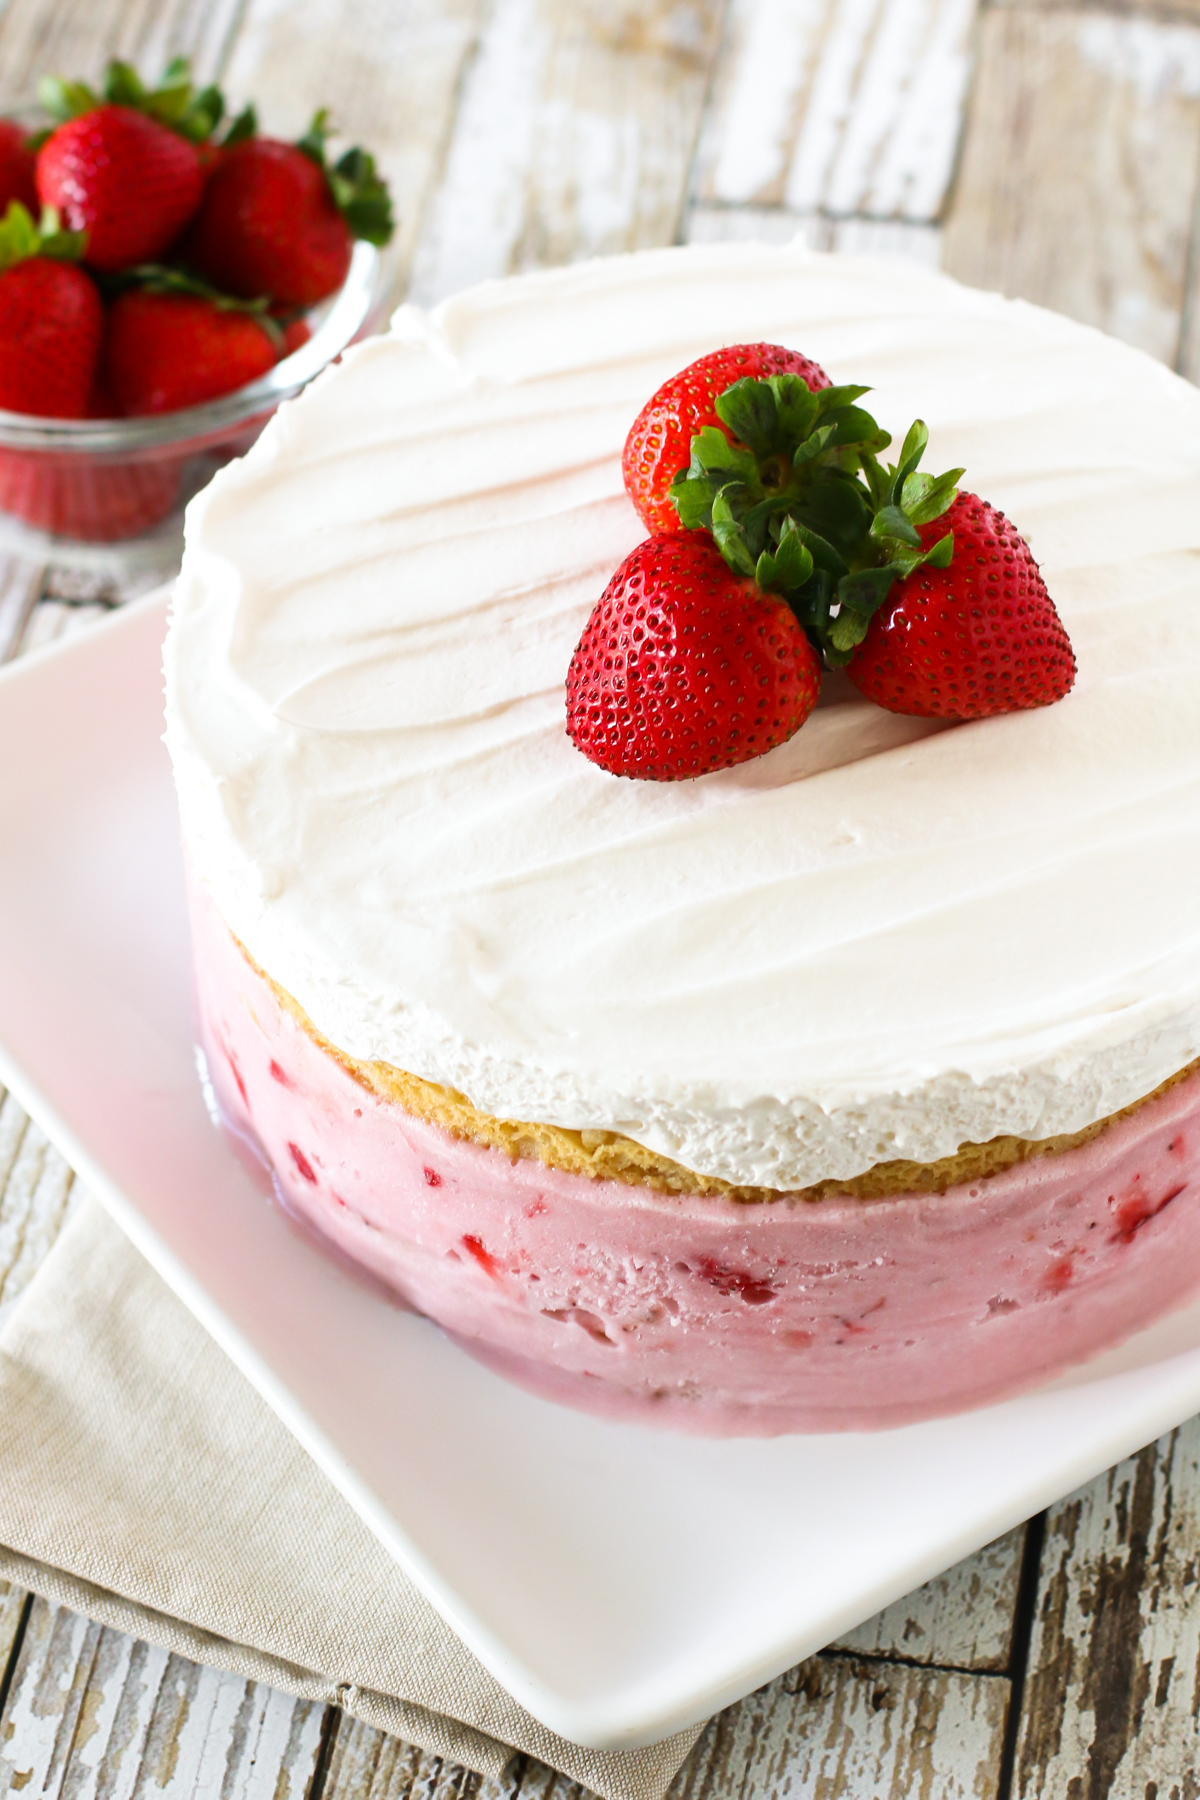 Gluten Free Vegan Strawberry Ice Cream Cake Sarah Bakes